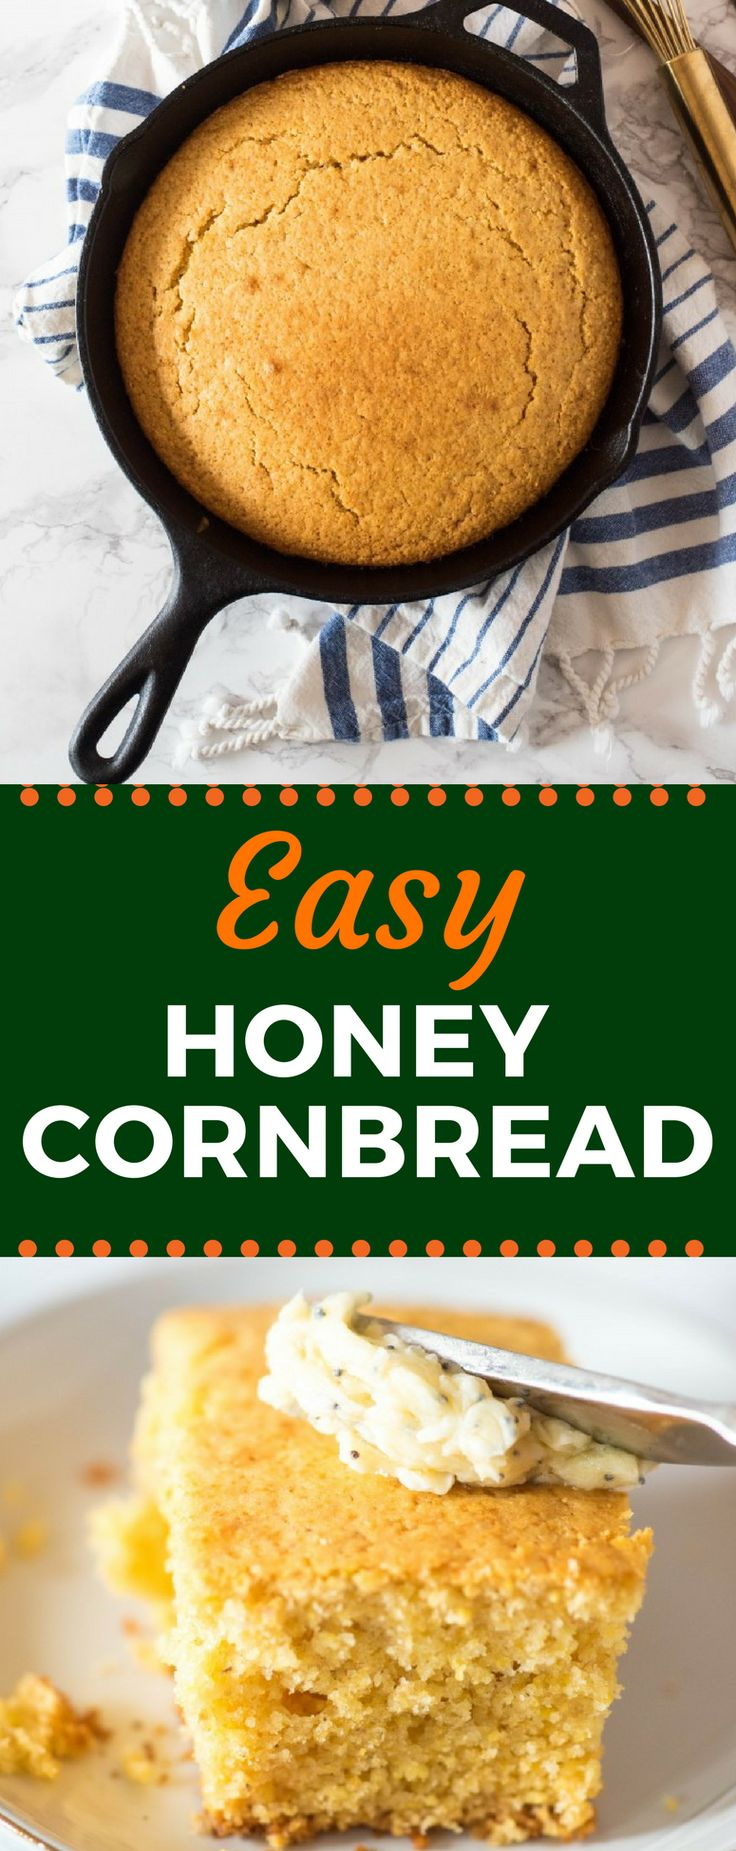 Forget the Jiffy! This Easy Honey Cornbread recipe is baked in a cast iron skillet, yielding a moist inside with crispy edges and just a touch of sweetness.Pair it with my delicious honey poppyseed butter. #honeycornbread #cornbreadrecipe #castironskillet #gogogogourmet